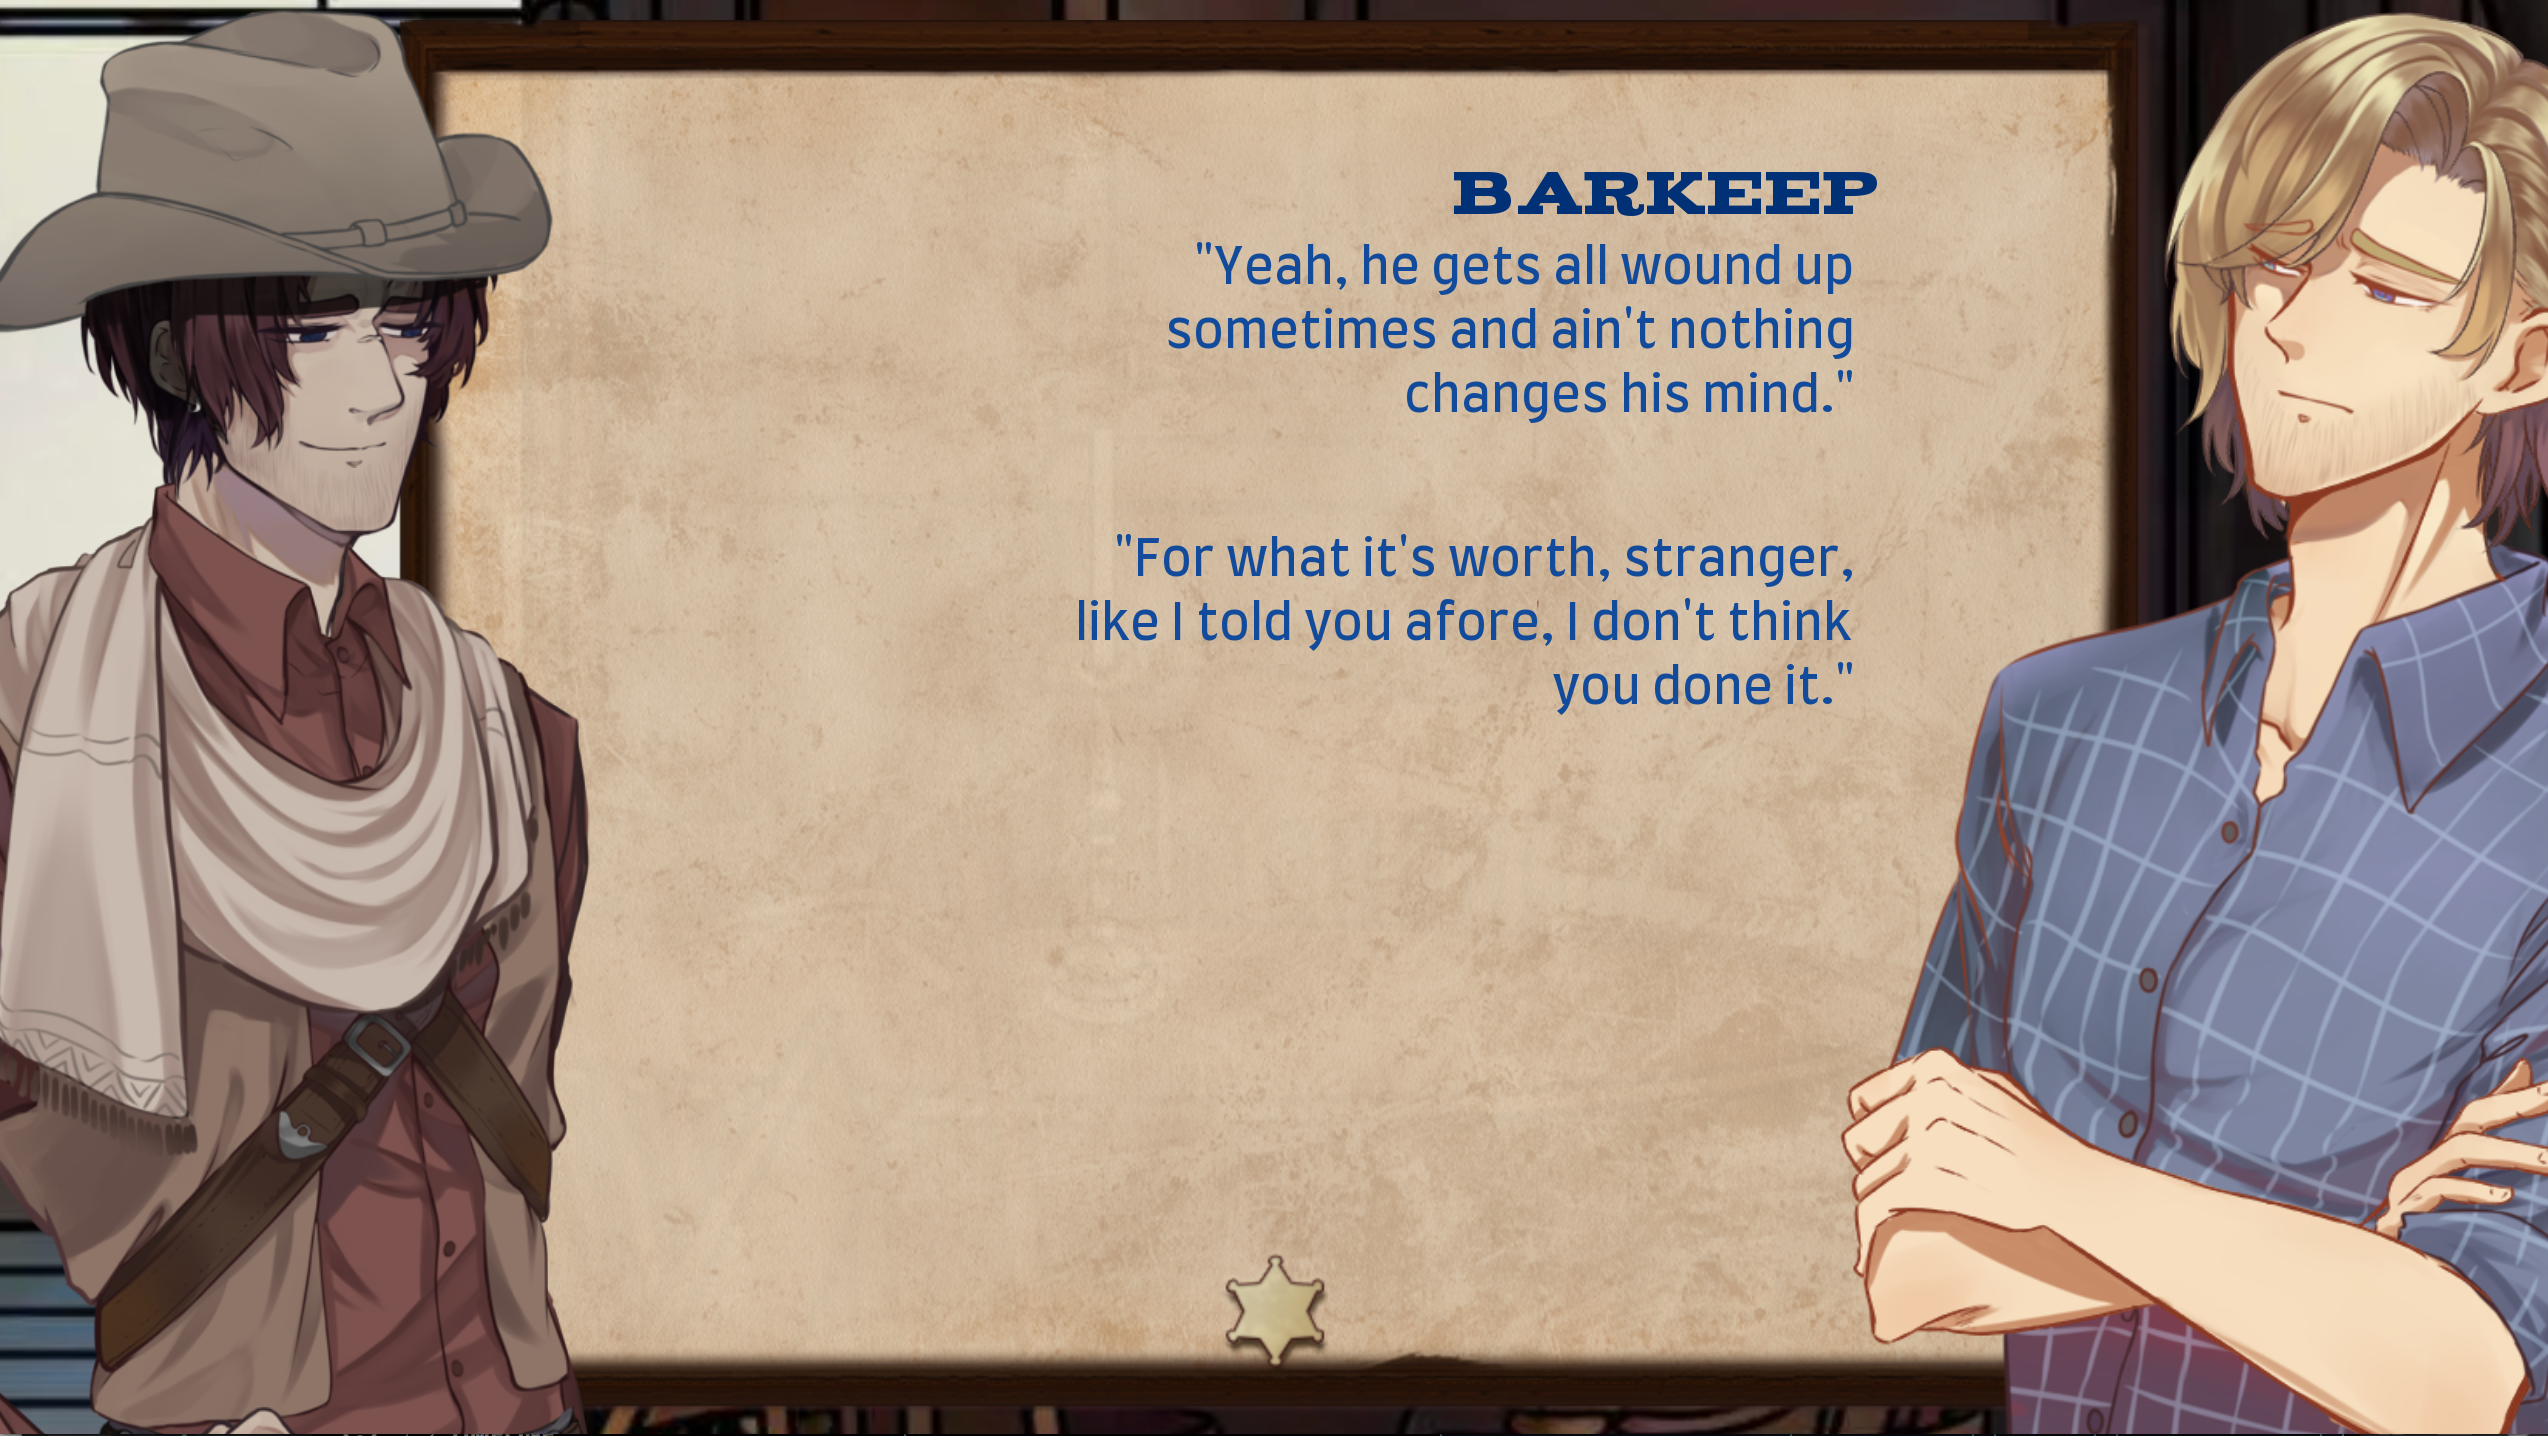 lee at left, dialogue box centered, jed at right. jed spoke two sentences, one with a prepended BARKEEP name identifier. first sentence is yeah, he gets all wound up sometimes and aint nothing changes his mind. second sentence is for what its worth, stranger, like i told you afore, i dont think you done it.